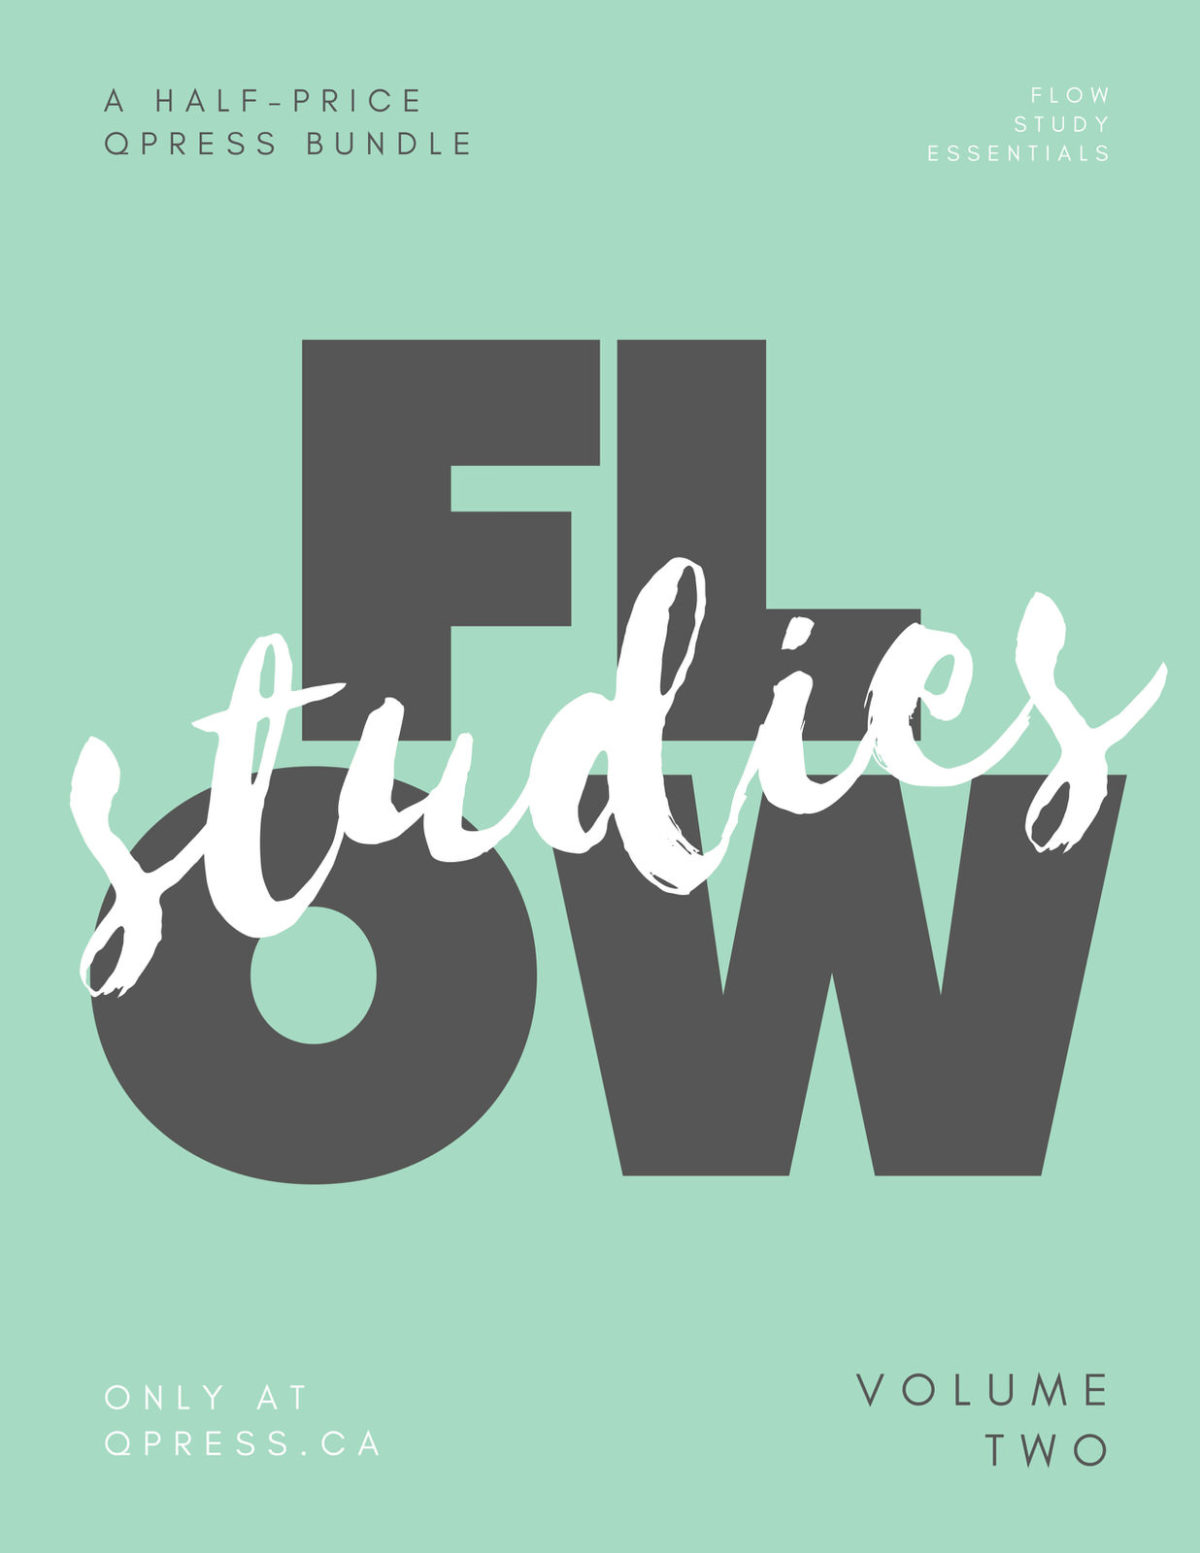 Flow Study Essentials Cover Vol 2 letter